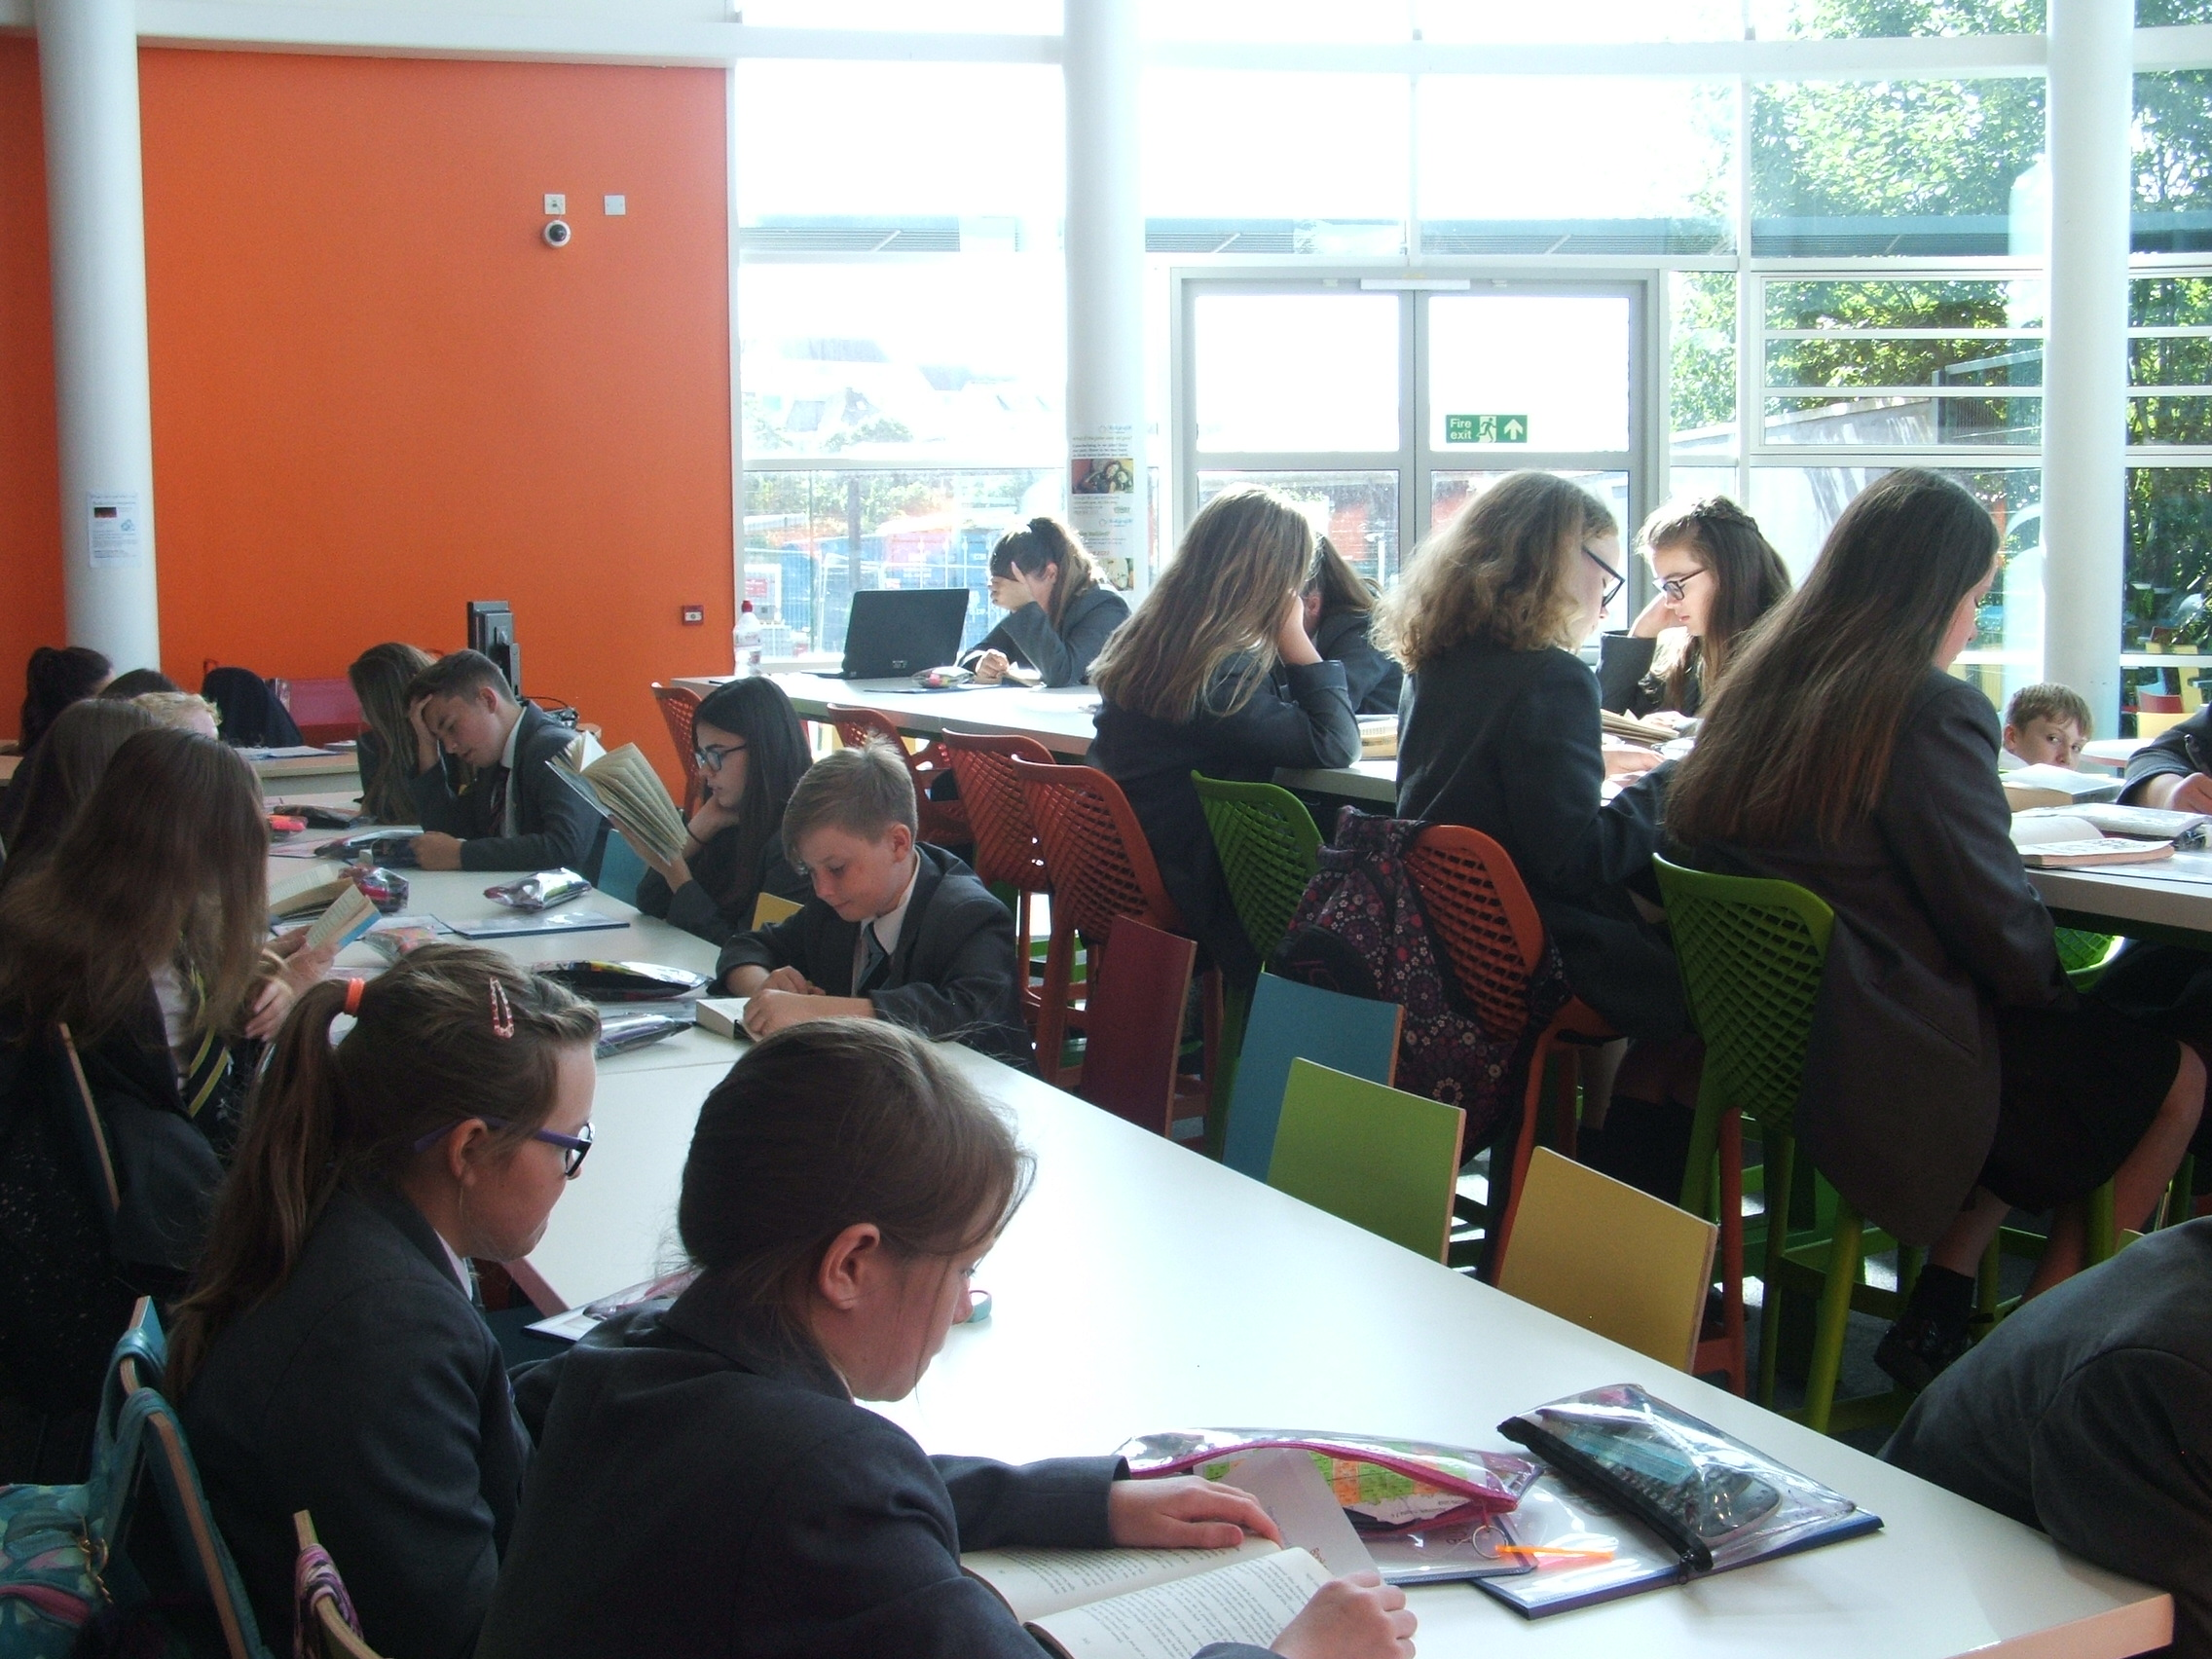 6.7.18 Year 7 library lesson